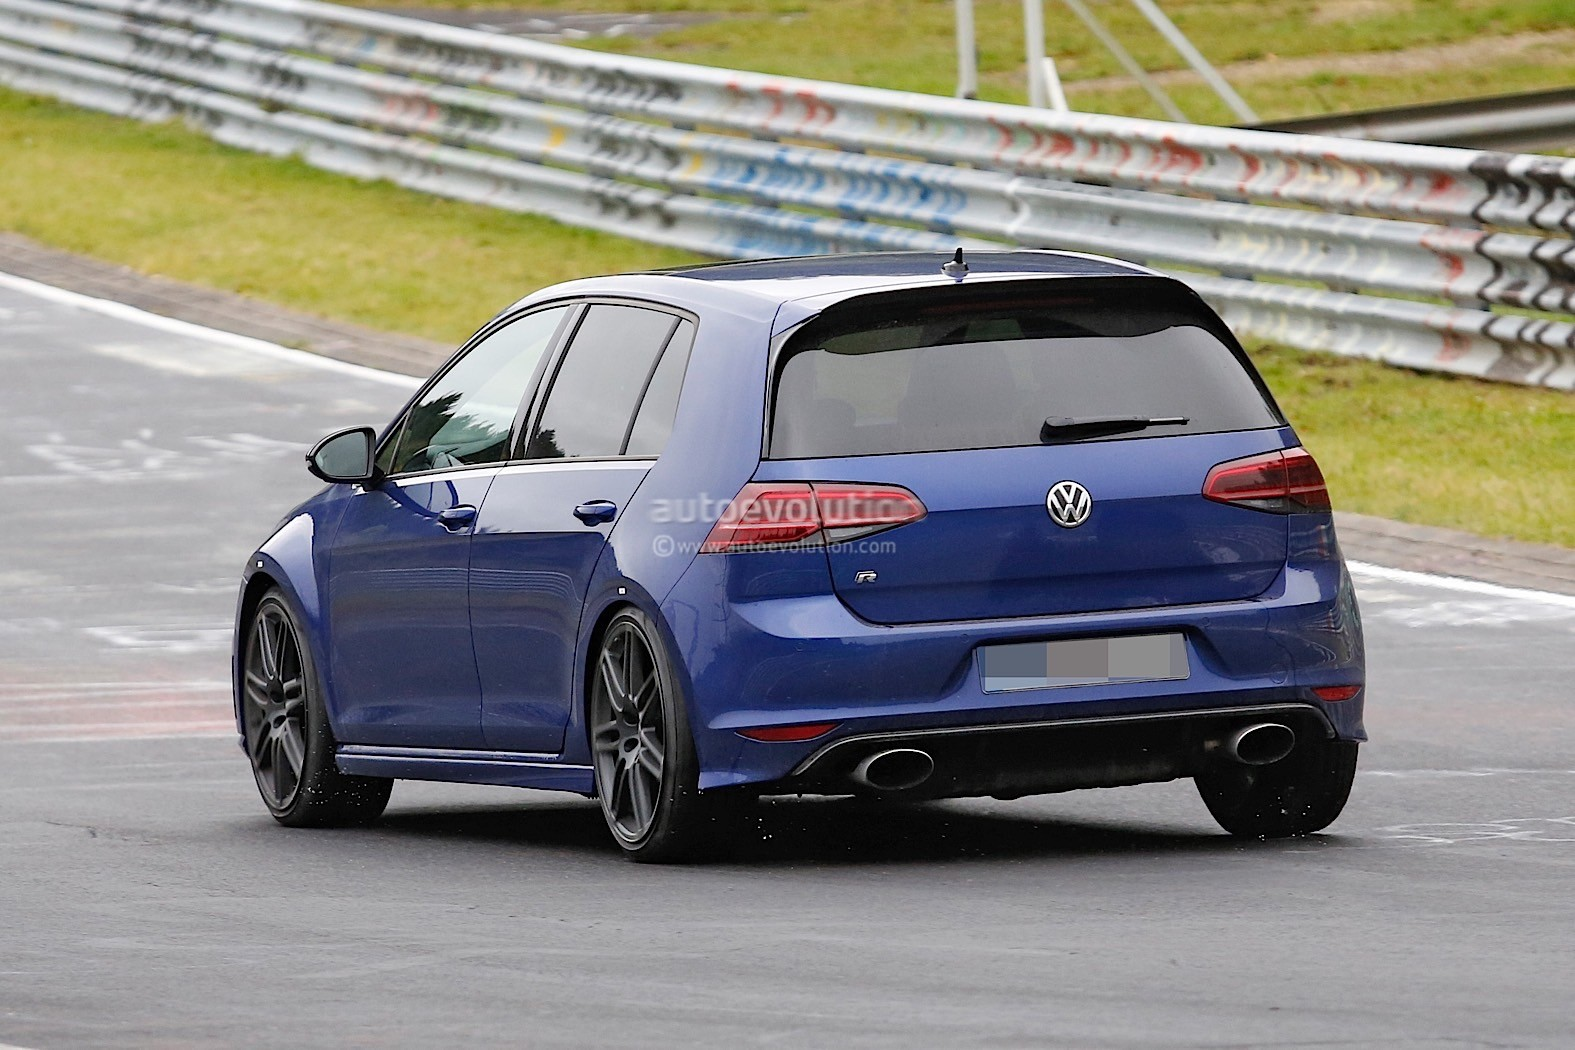 spyshots volkswagen golf r mule with audi rs3 exhaust tips signals r420 return autoevolution. Black Bedroom Furniture Sets. Home Design Ideas